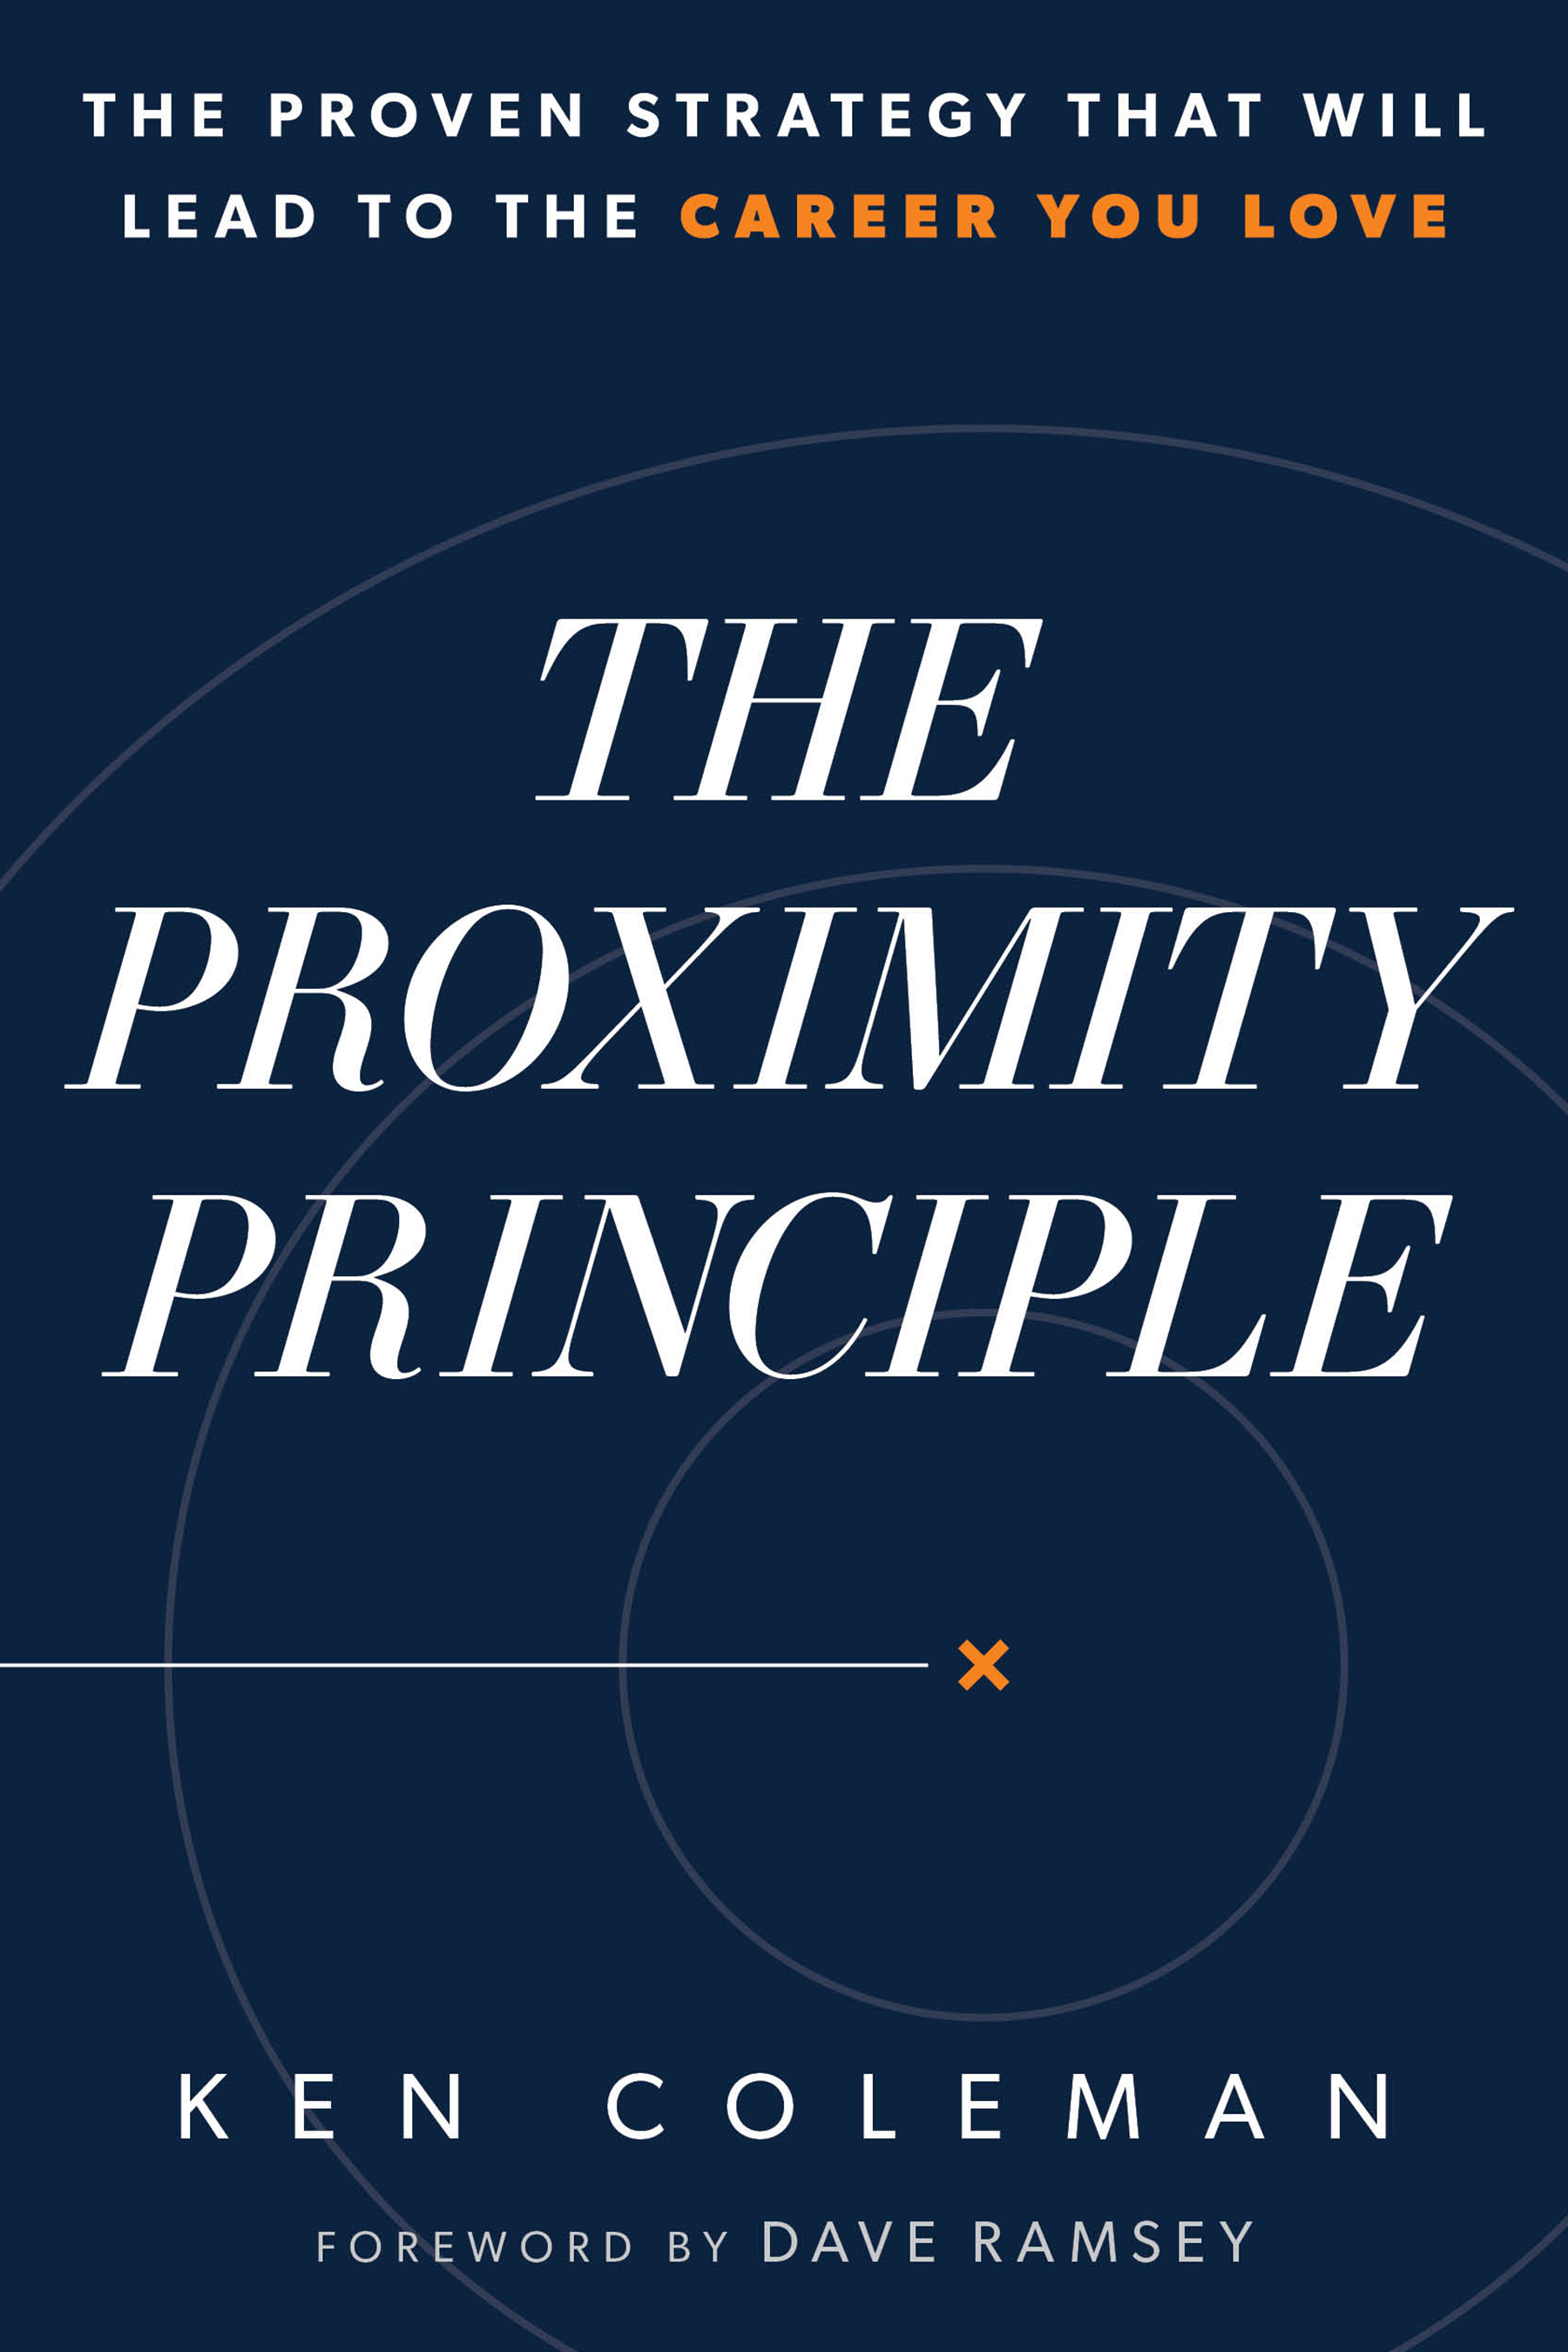 Ken Coleman Helps People Find Purpose and Meaning in Their Careers in His  New Book The Proximity Principle | Business Wire